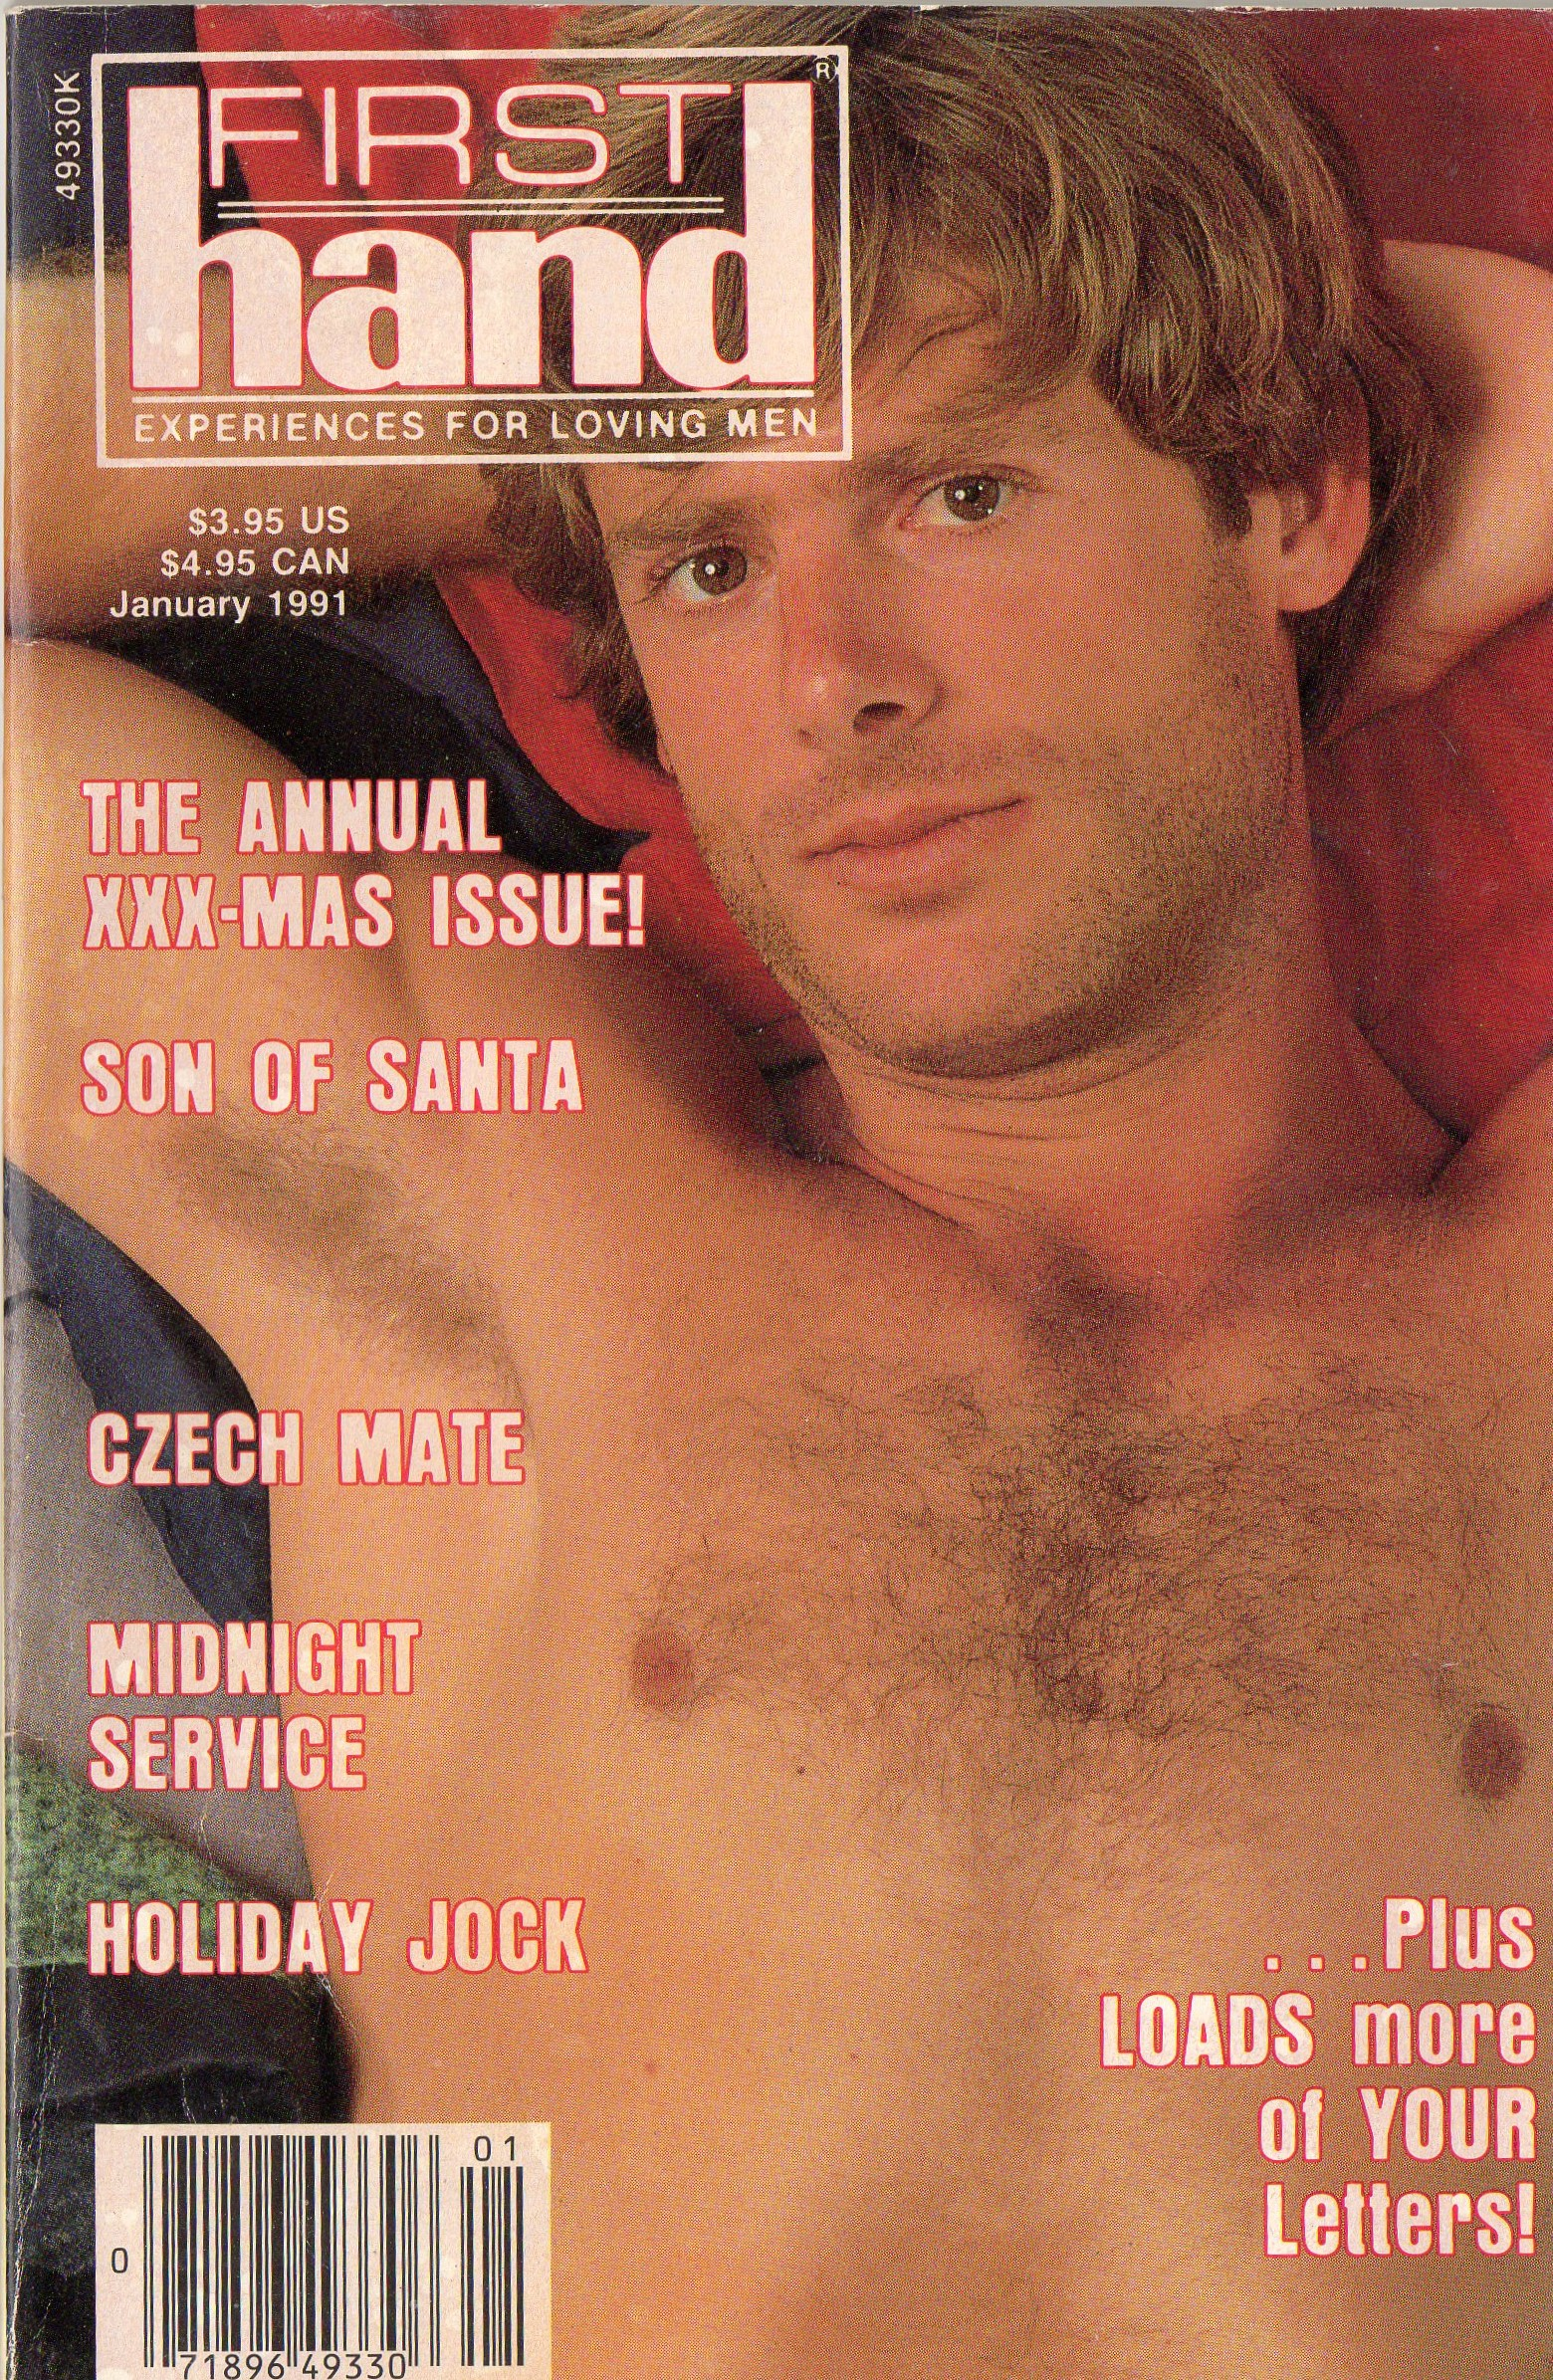 First Hand Experiences for Men (Volume 11 #1 1991 - Released January 1991) Gay Male Digest Magazine